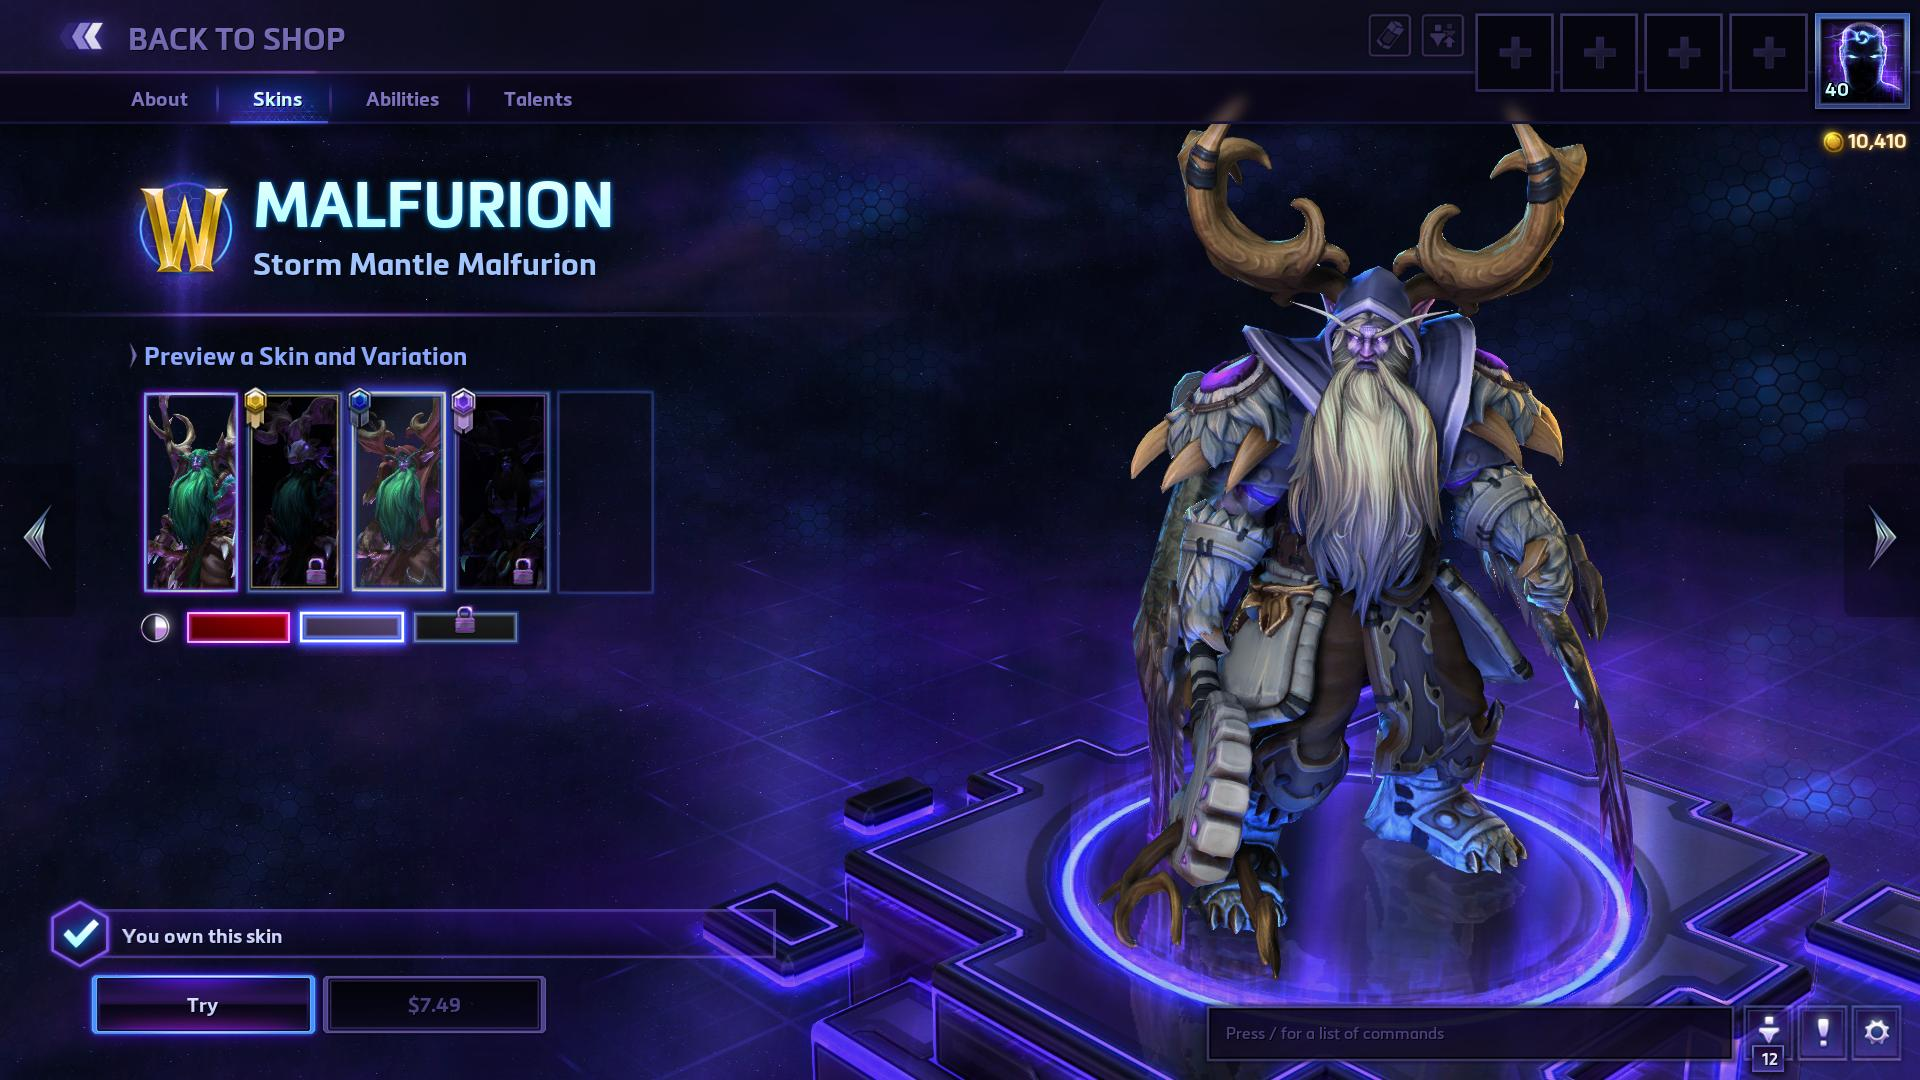 Heroes of the storm giveaway